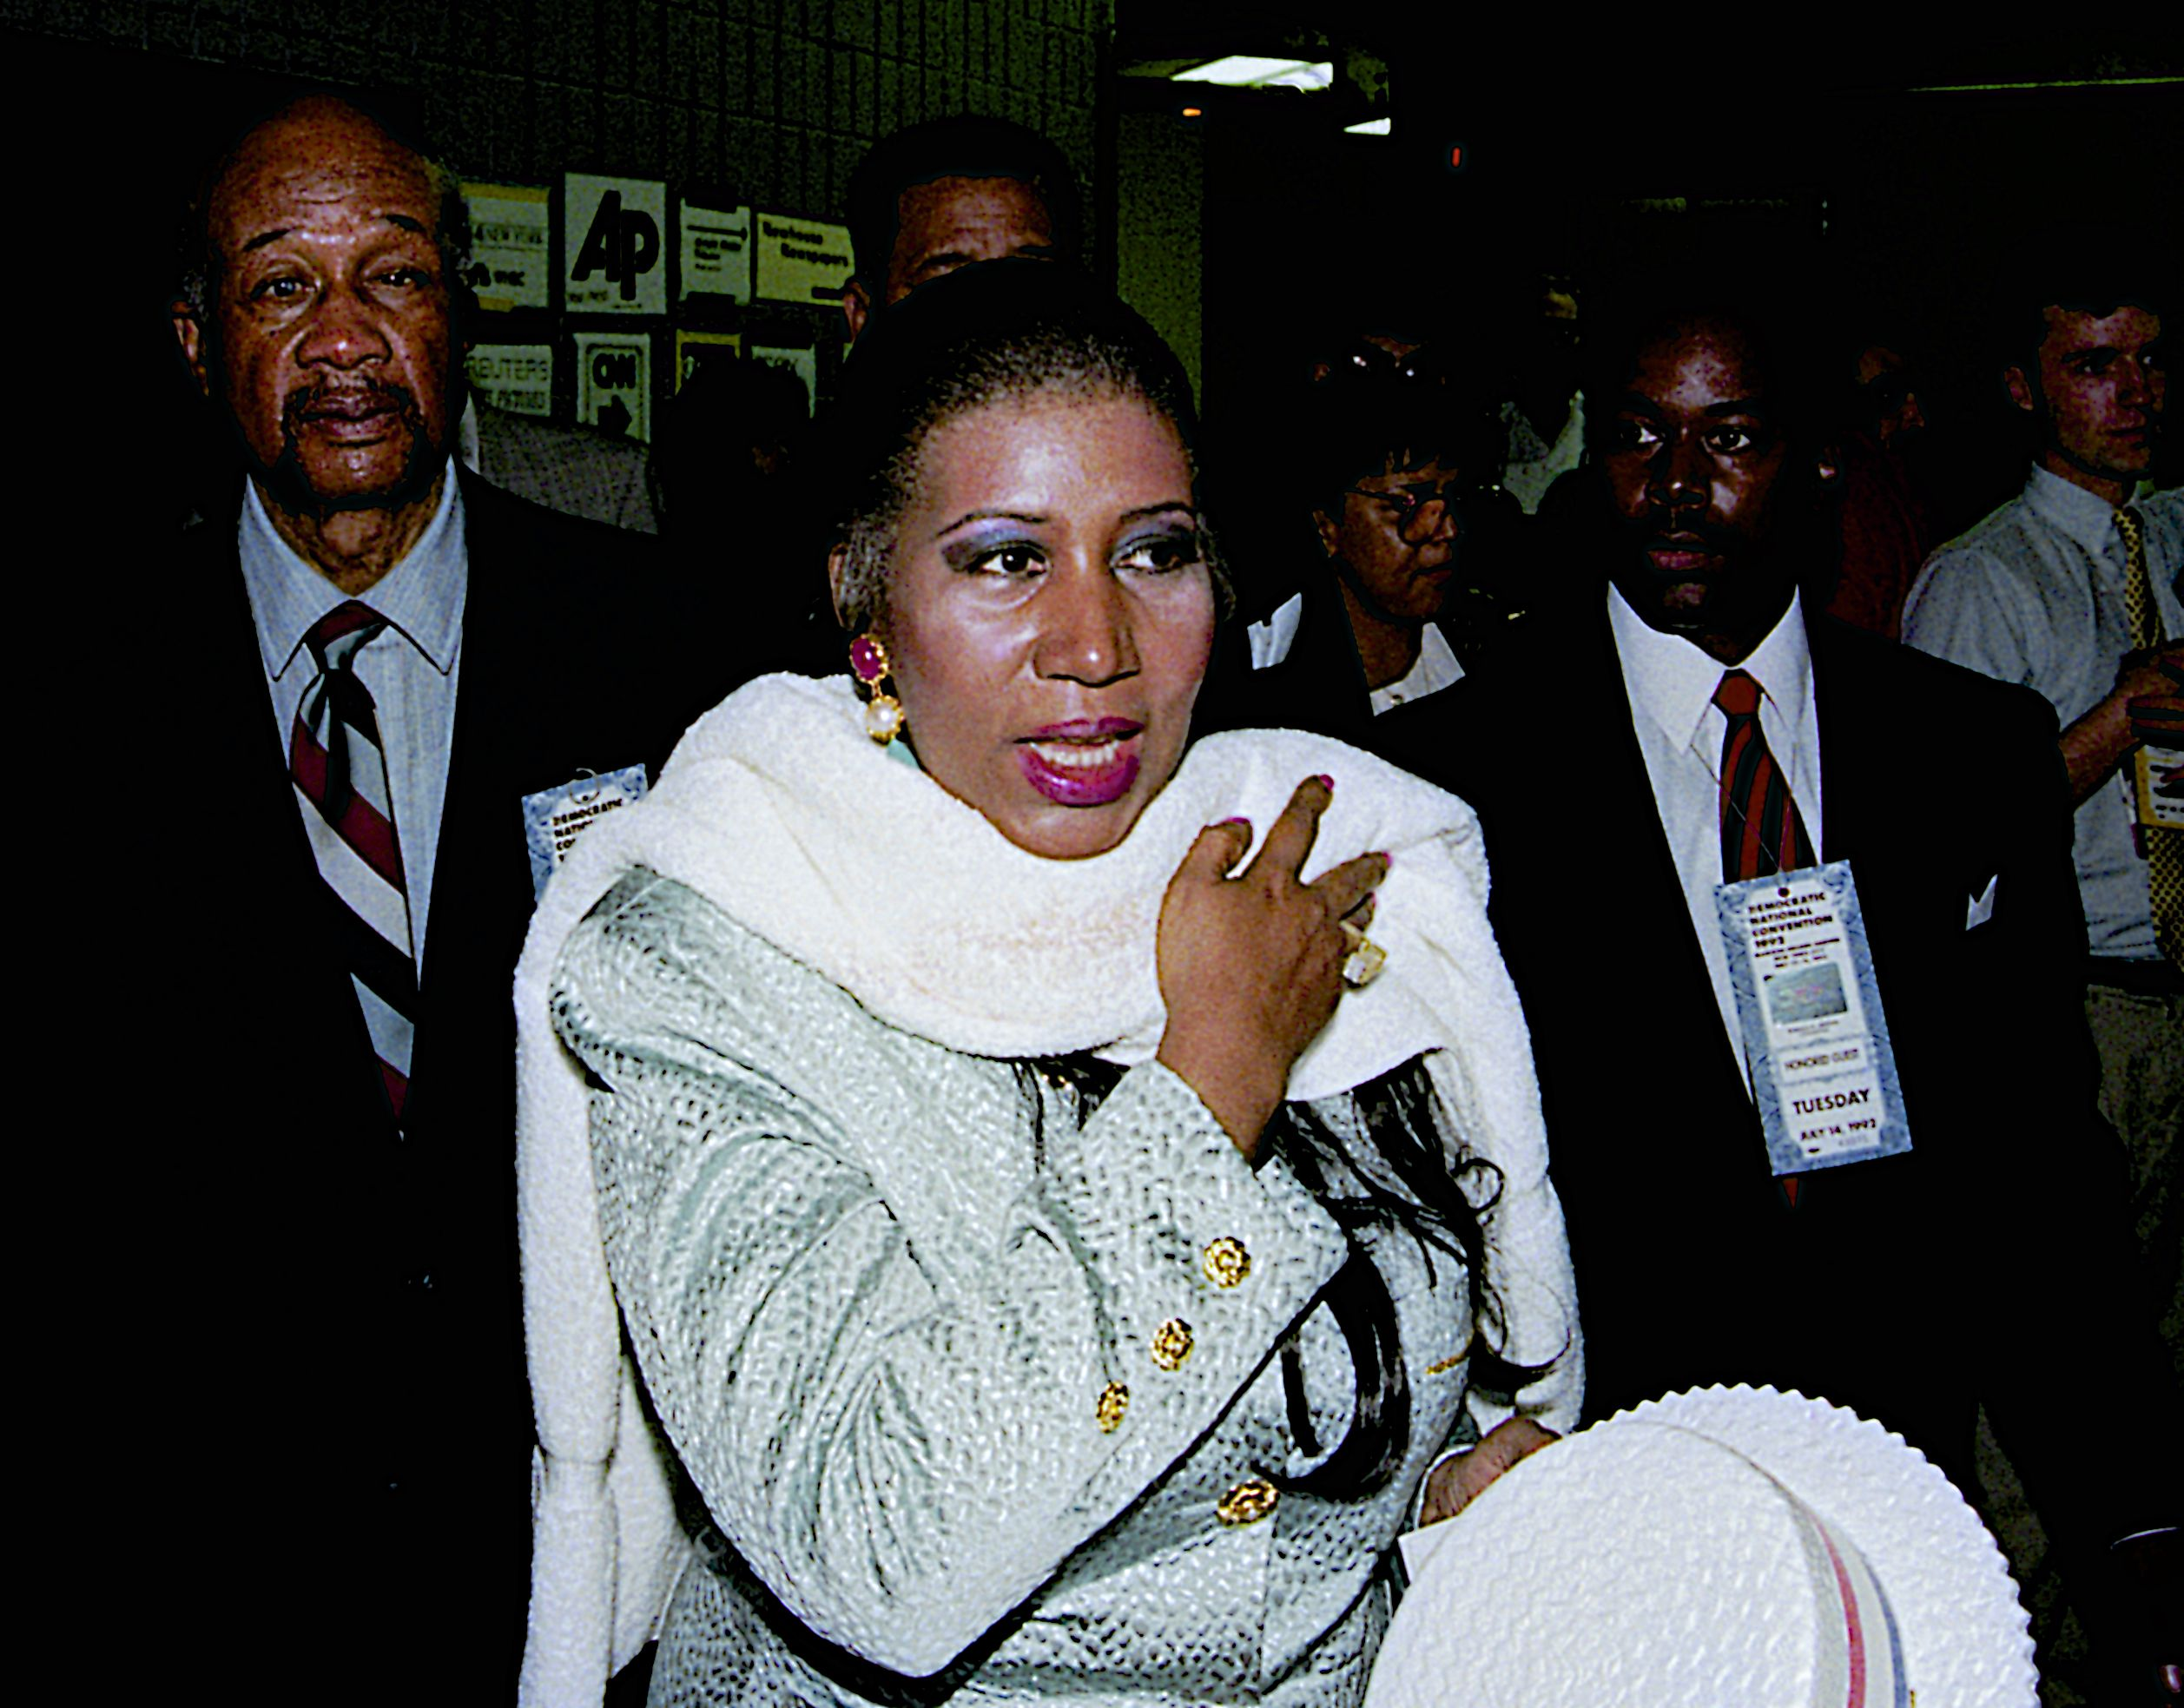 Aretha Franklin At The Democratic National Convention, New York, USA - 14 Jul 1992